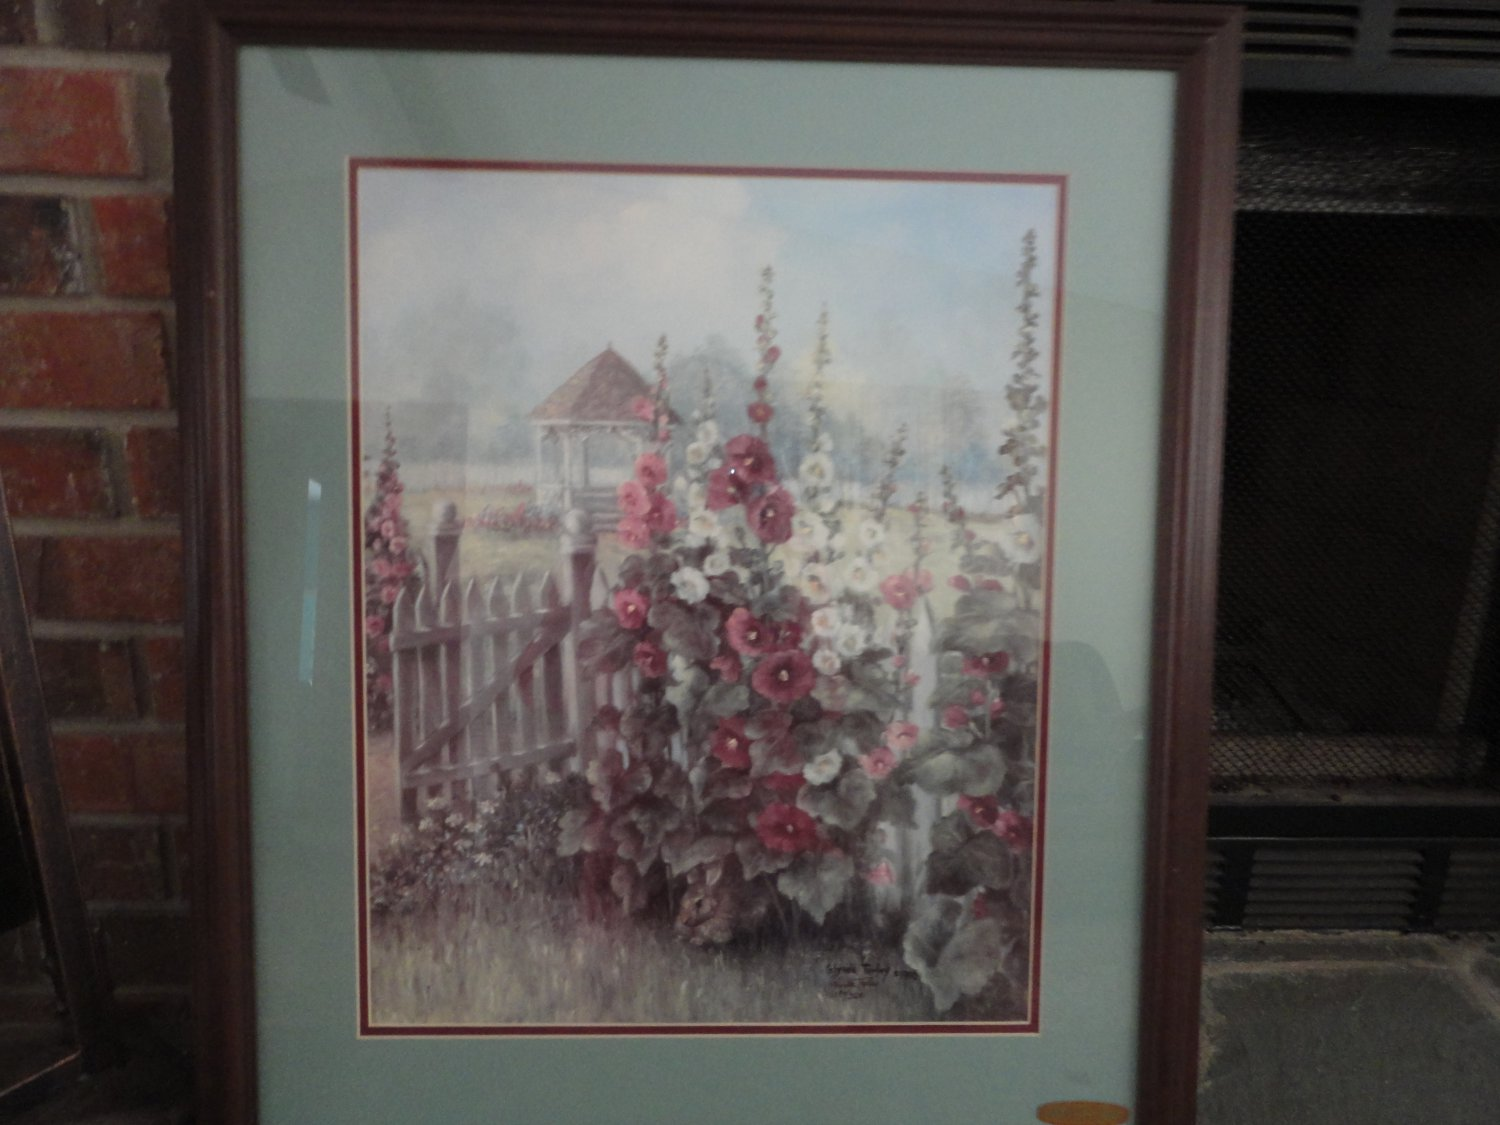 Vintage Glynda Turley Hollyhocks Ii Limited Edition Signed